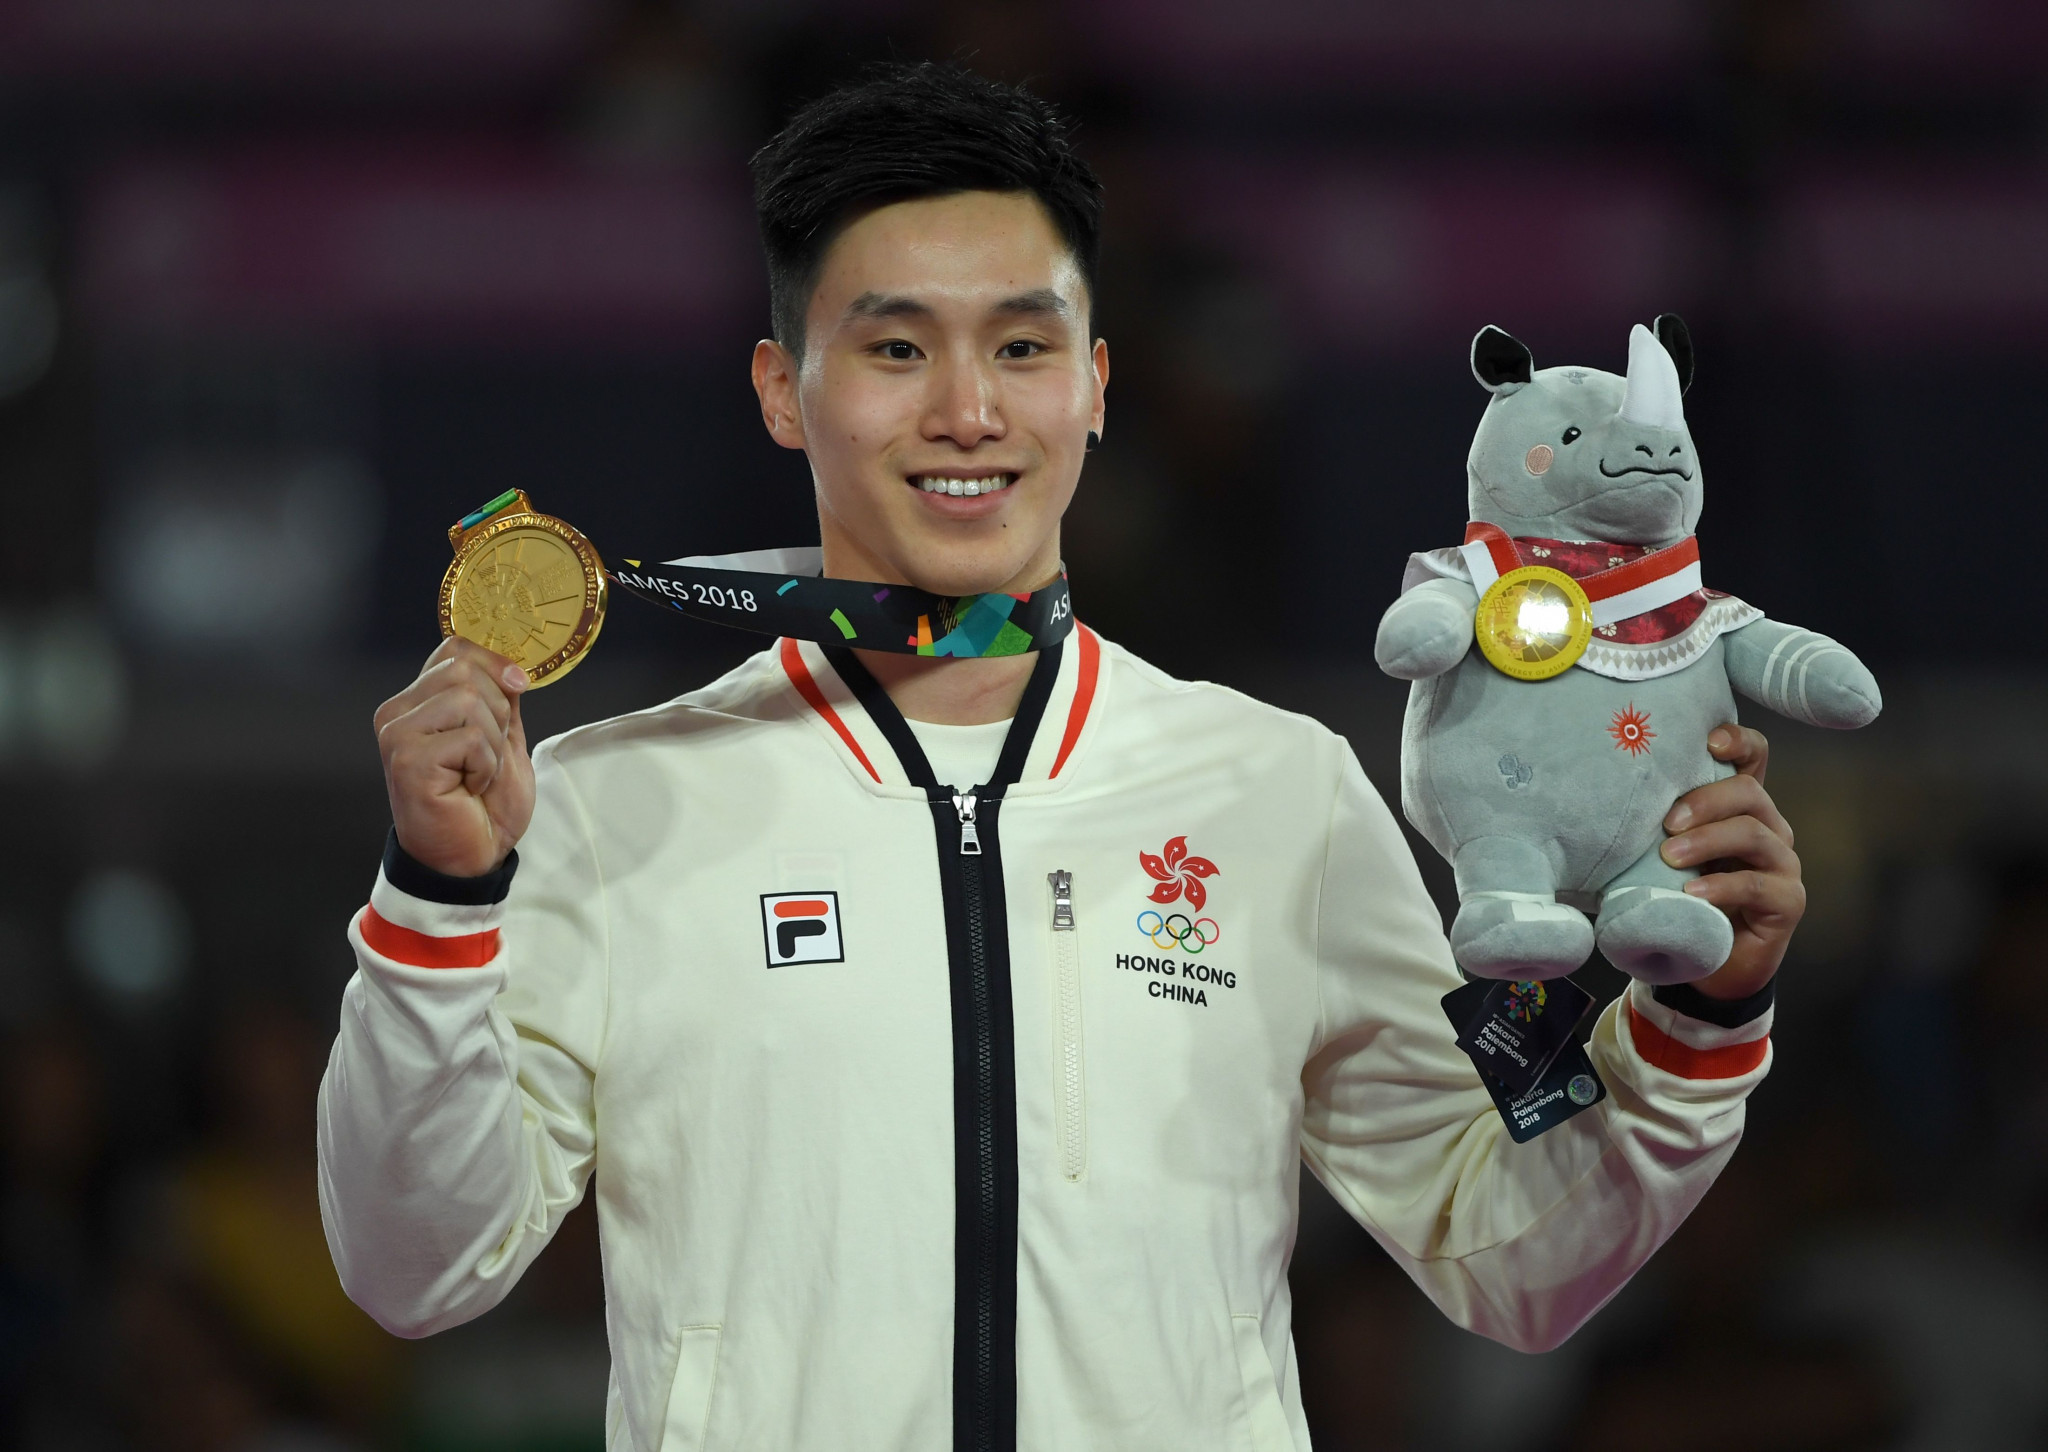 Hong Kong's Asian Games gymnastics gold medallist Shek Wai Hung attended the launch event ©Getty Images